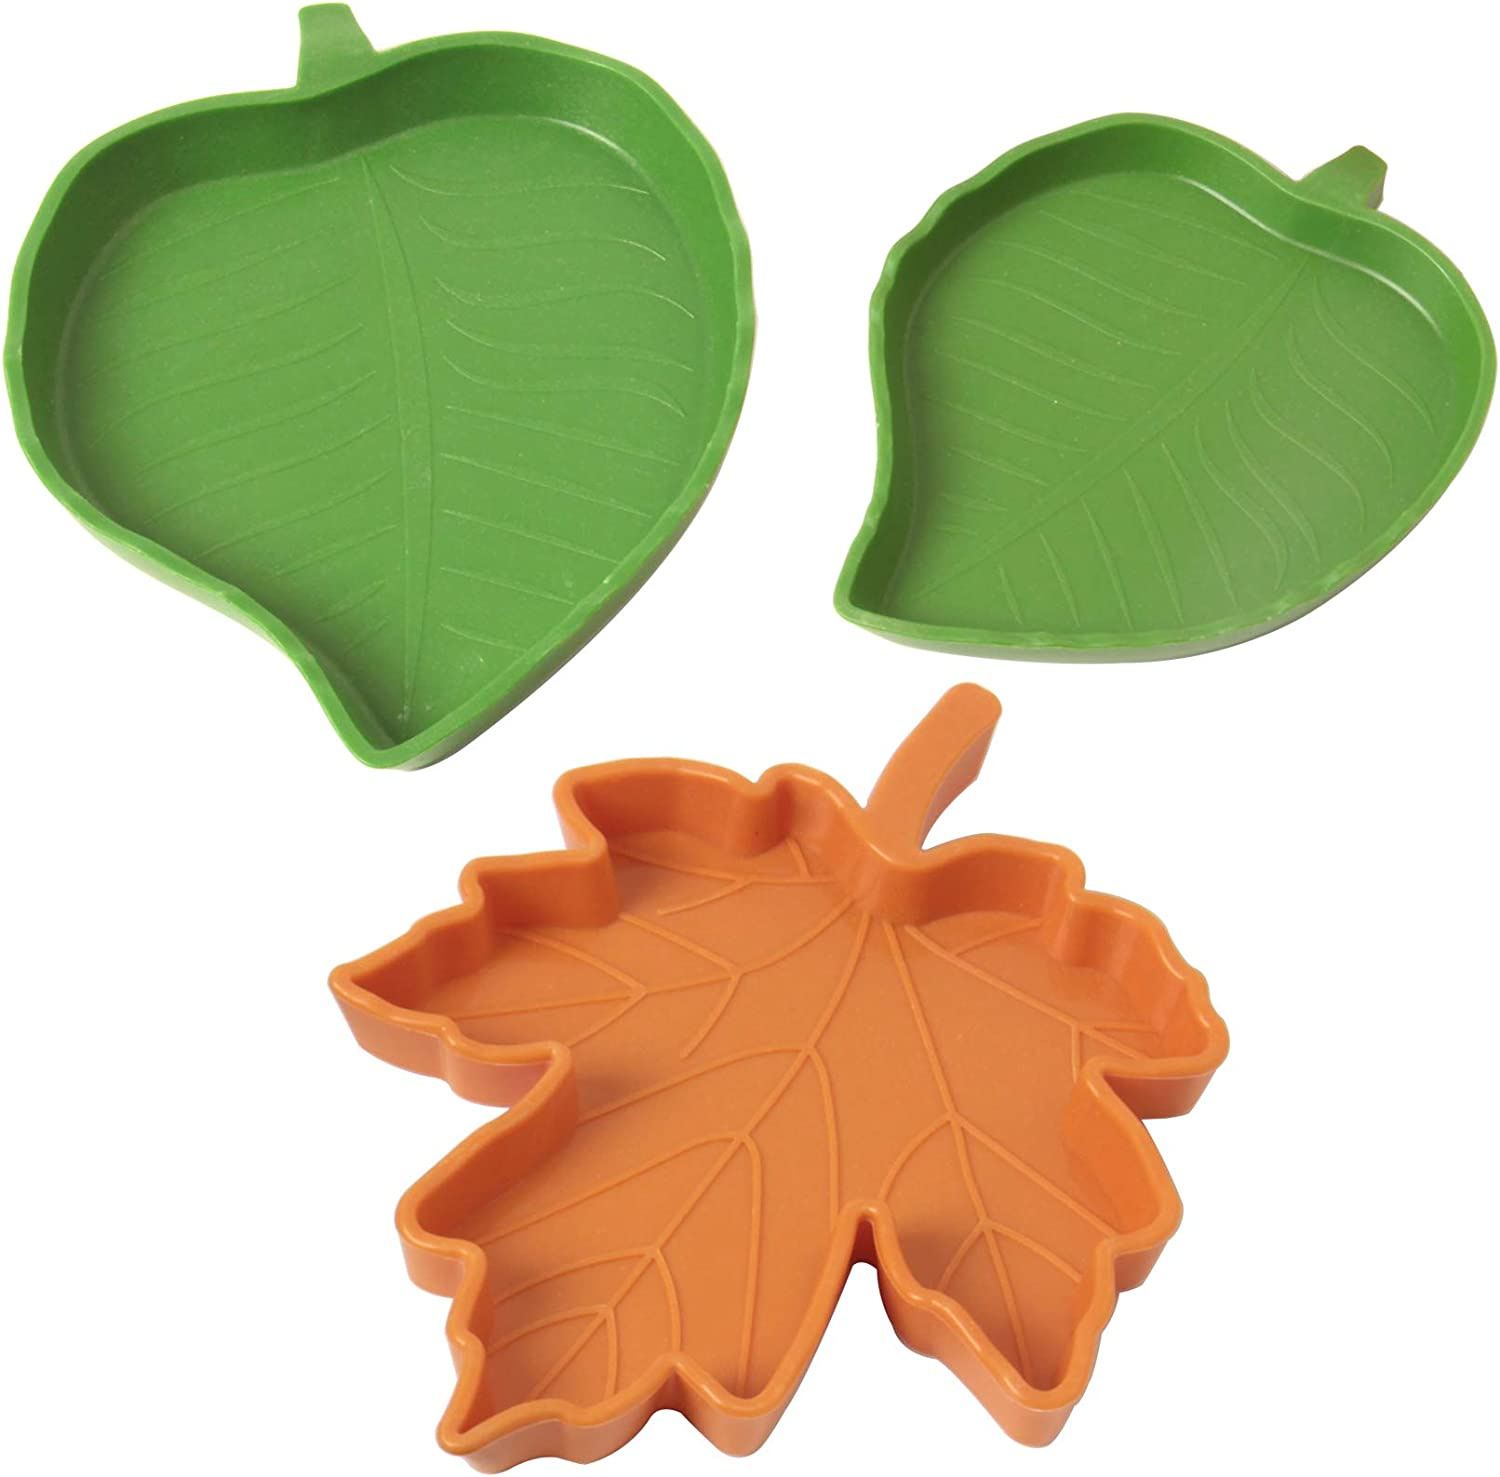 HAPY SHOP 3 Pieces Leaf Reptile Food Water Bowl Dish Plate Pet Aquarium Ornament for Tortoises Lizards Snake Crawl Pet or Small Reptiles Drinking and Eating(3 Style)